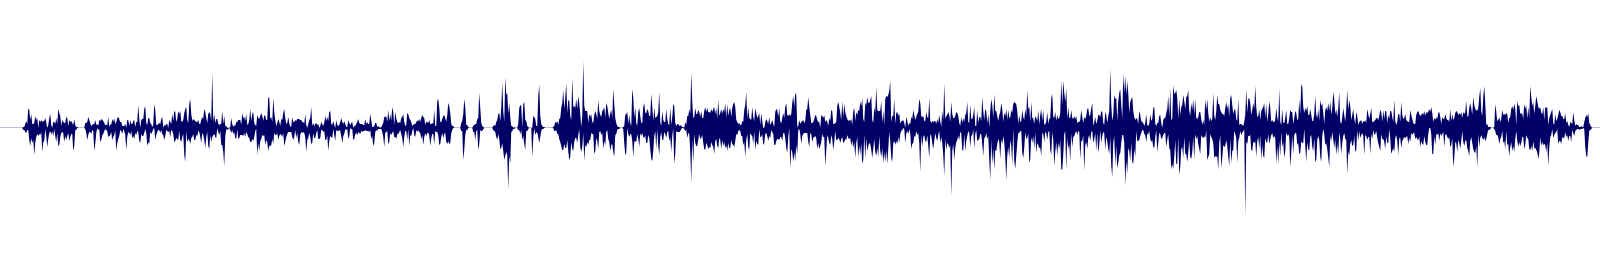 waveform of track #112117